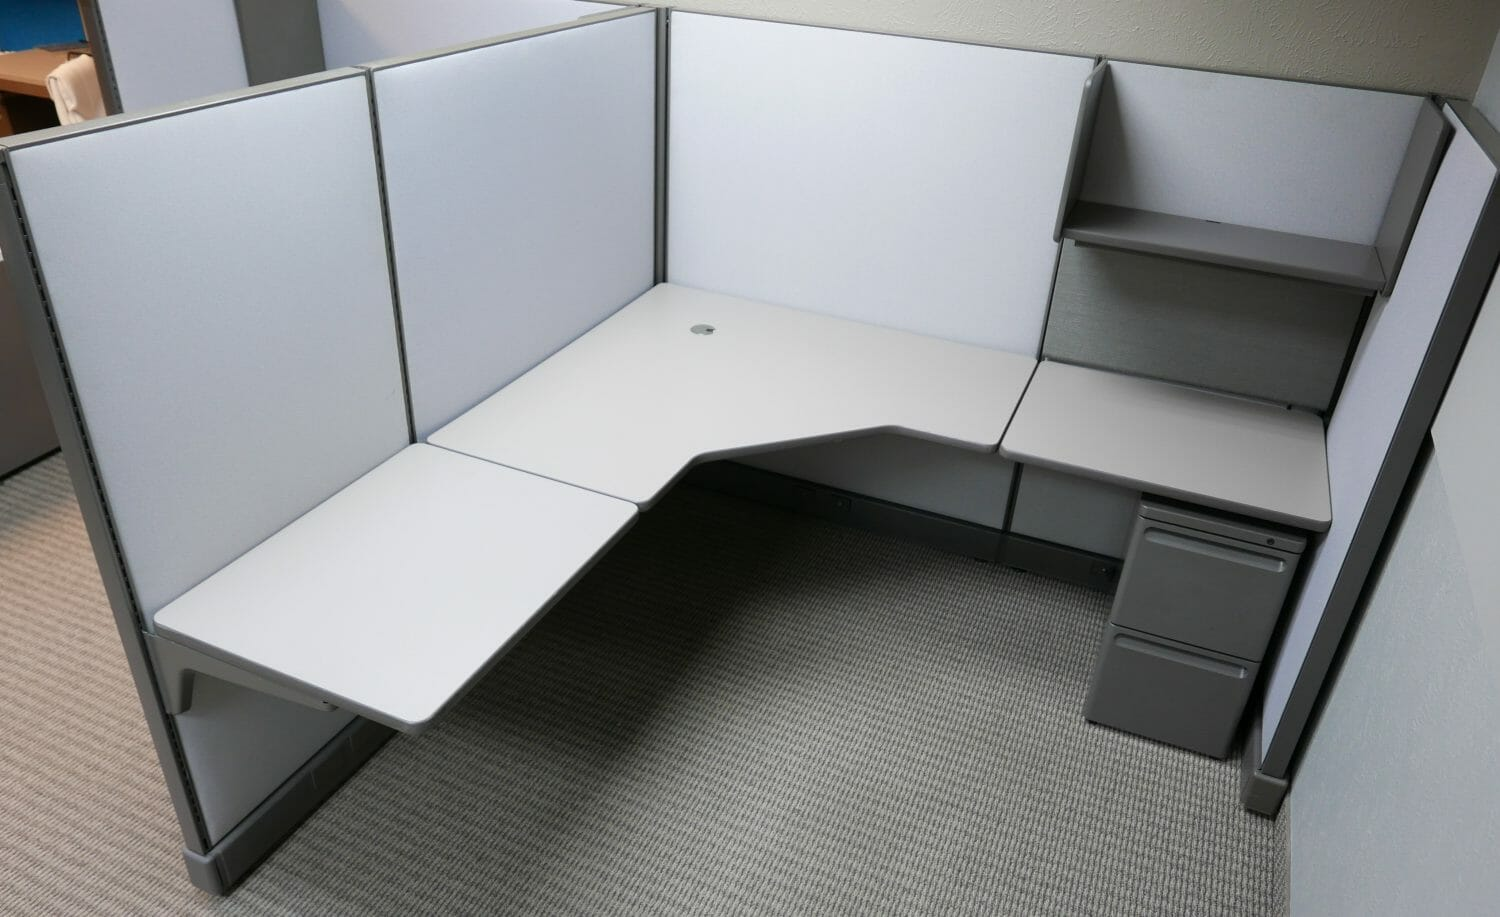 6 5x6 5 Office Cubicles